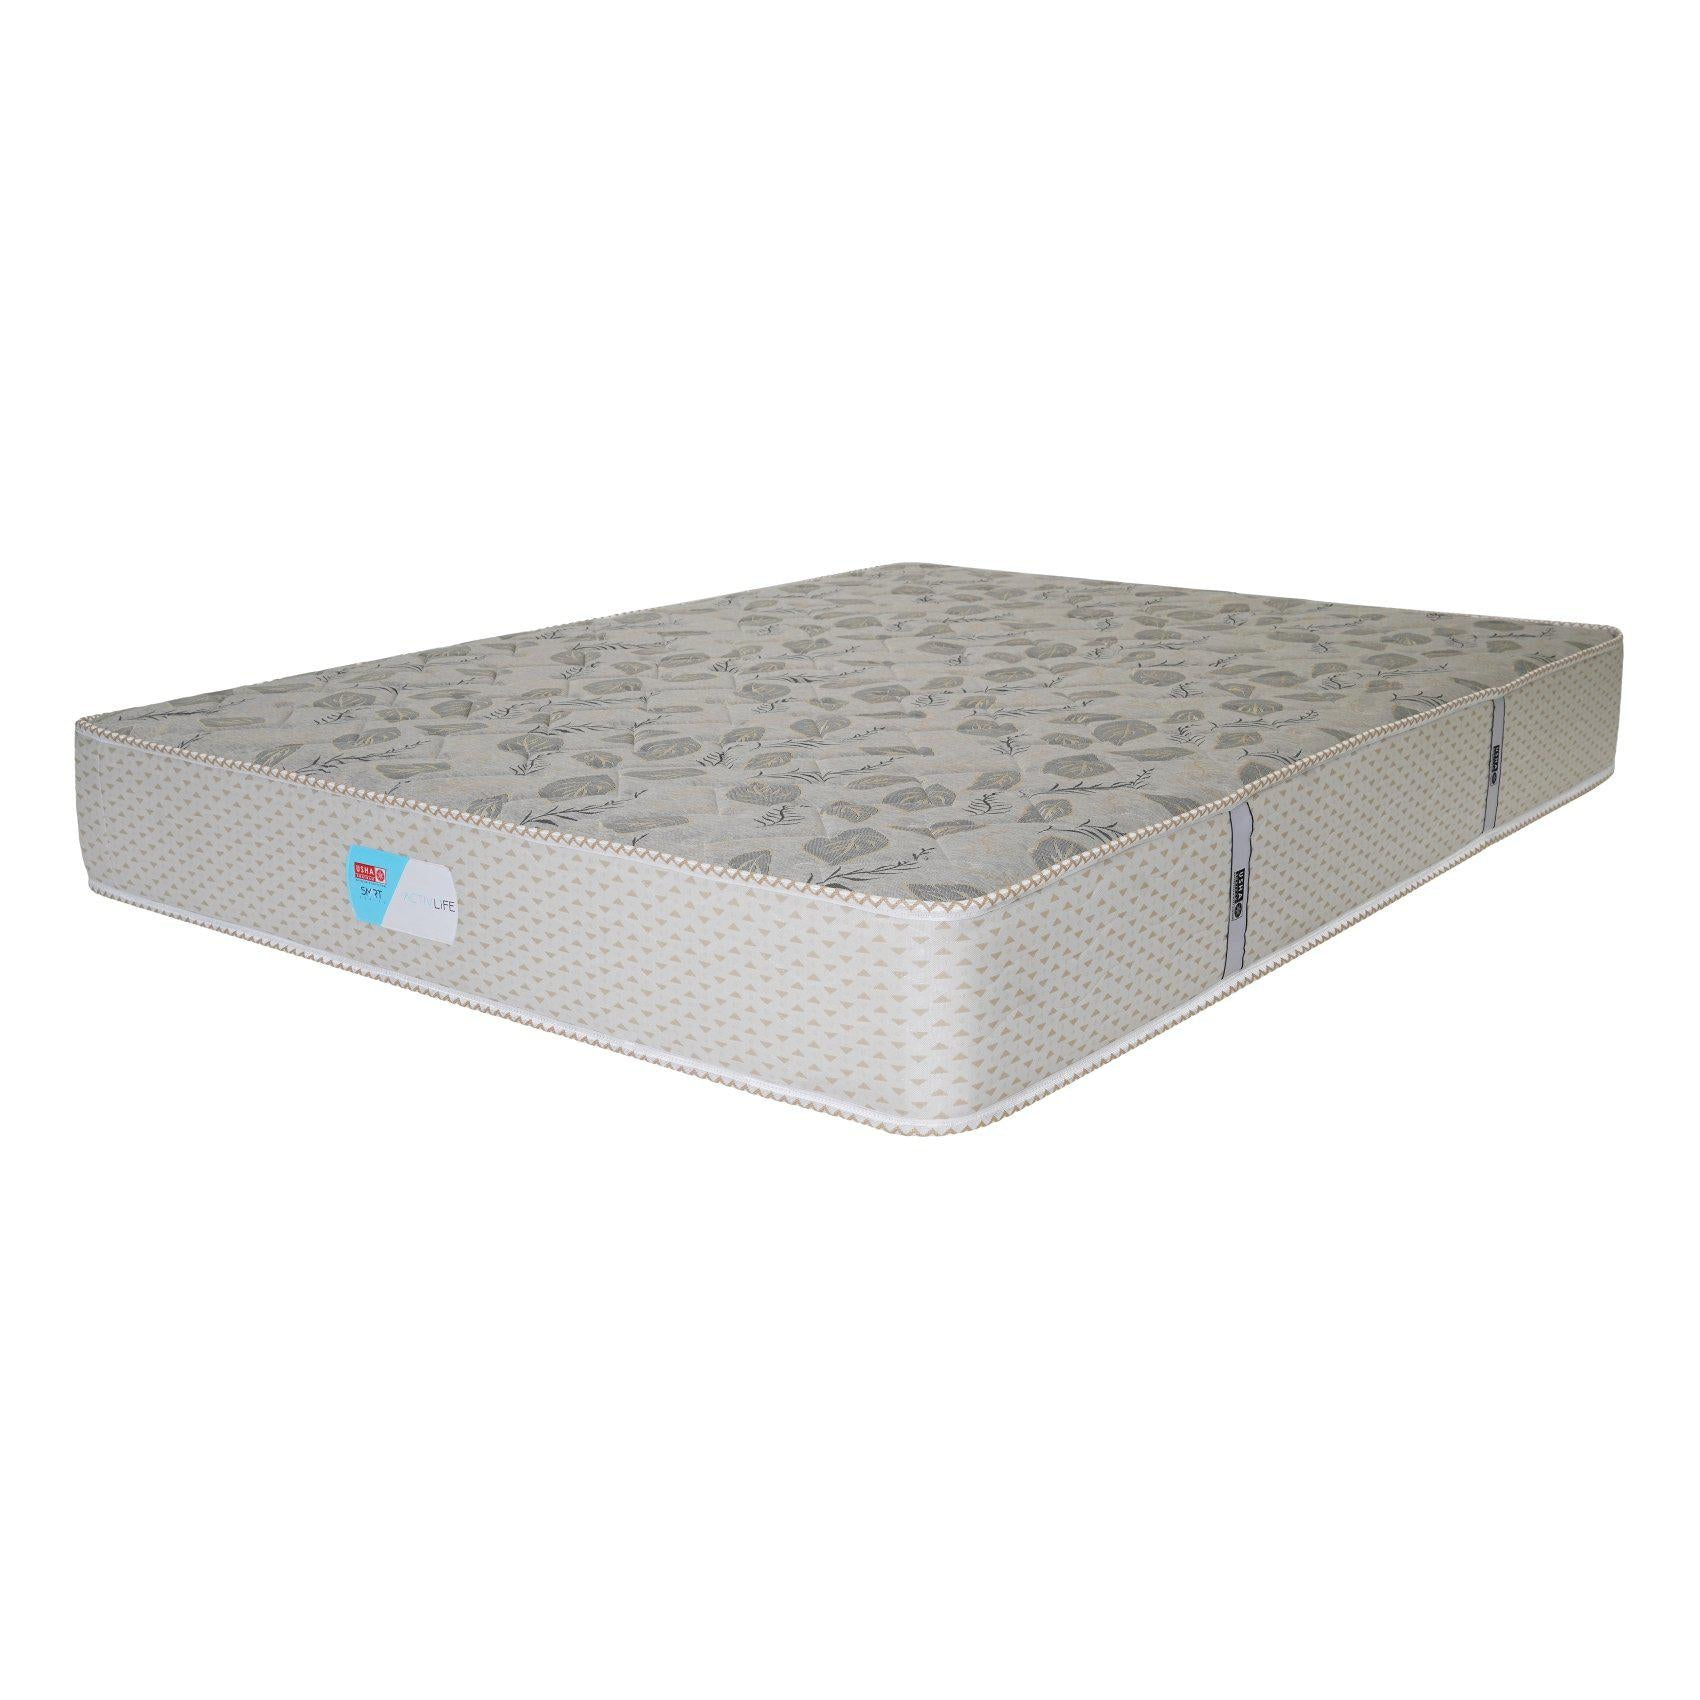 Activelife Rebonded Foam Mattress